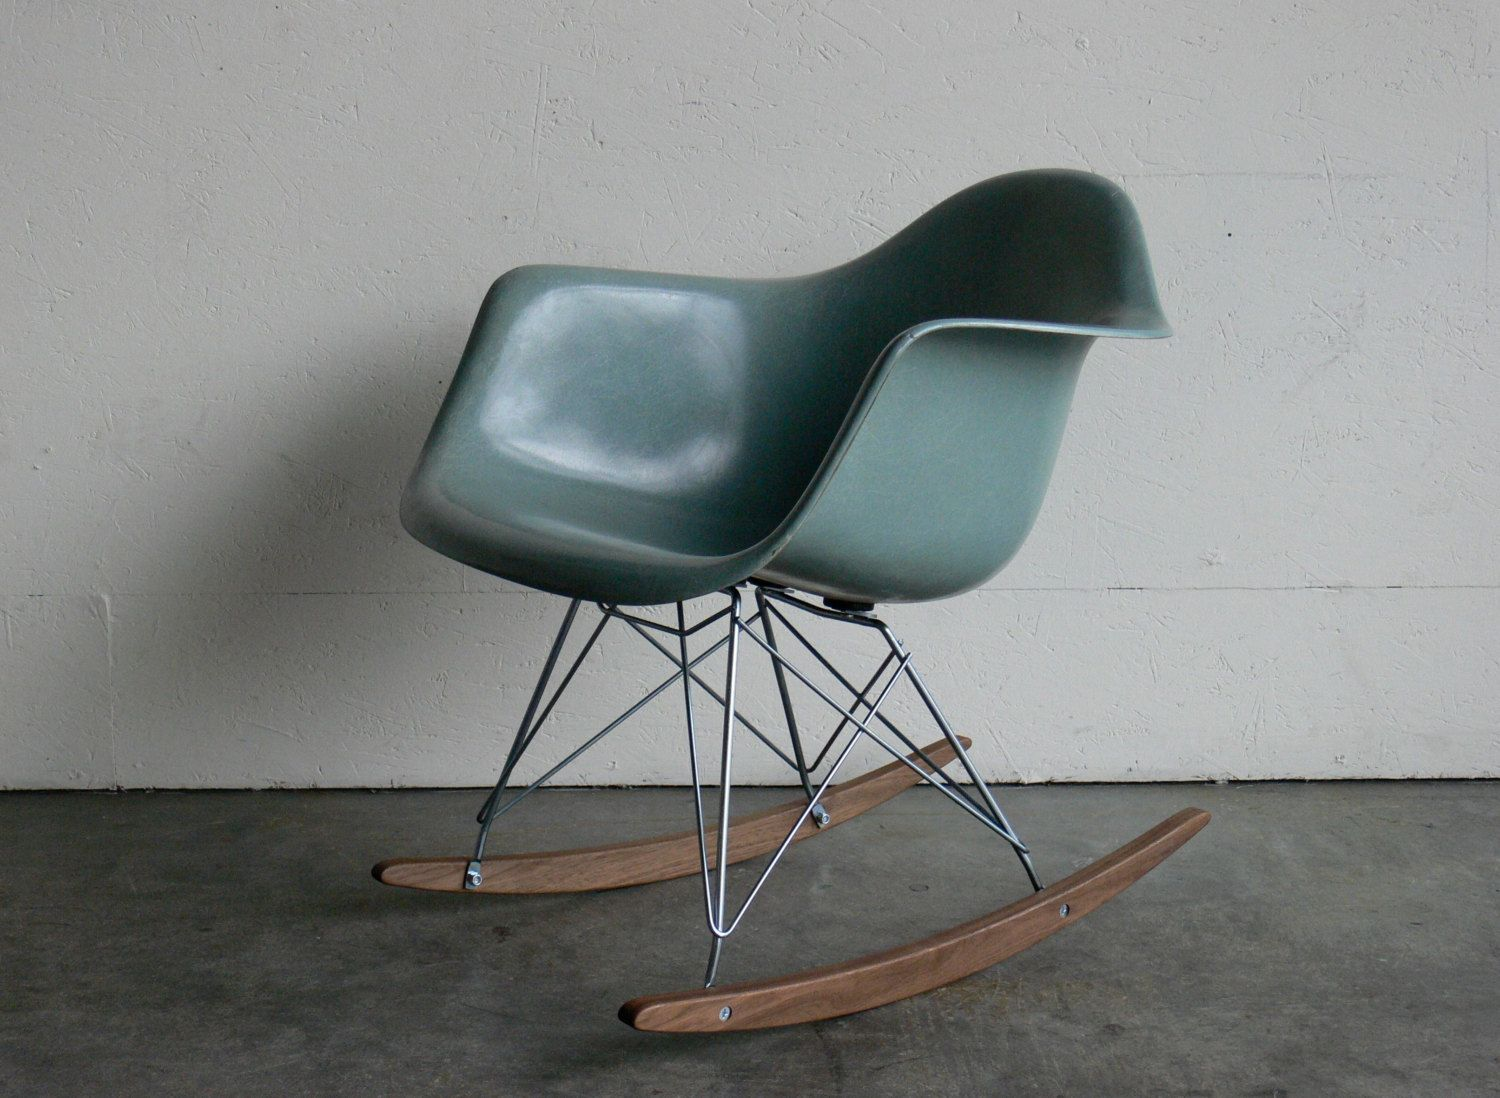 Rocker Base for Herman Miller Eames Shell fiberglass vintage rocking chair RAR